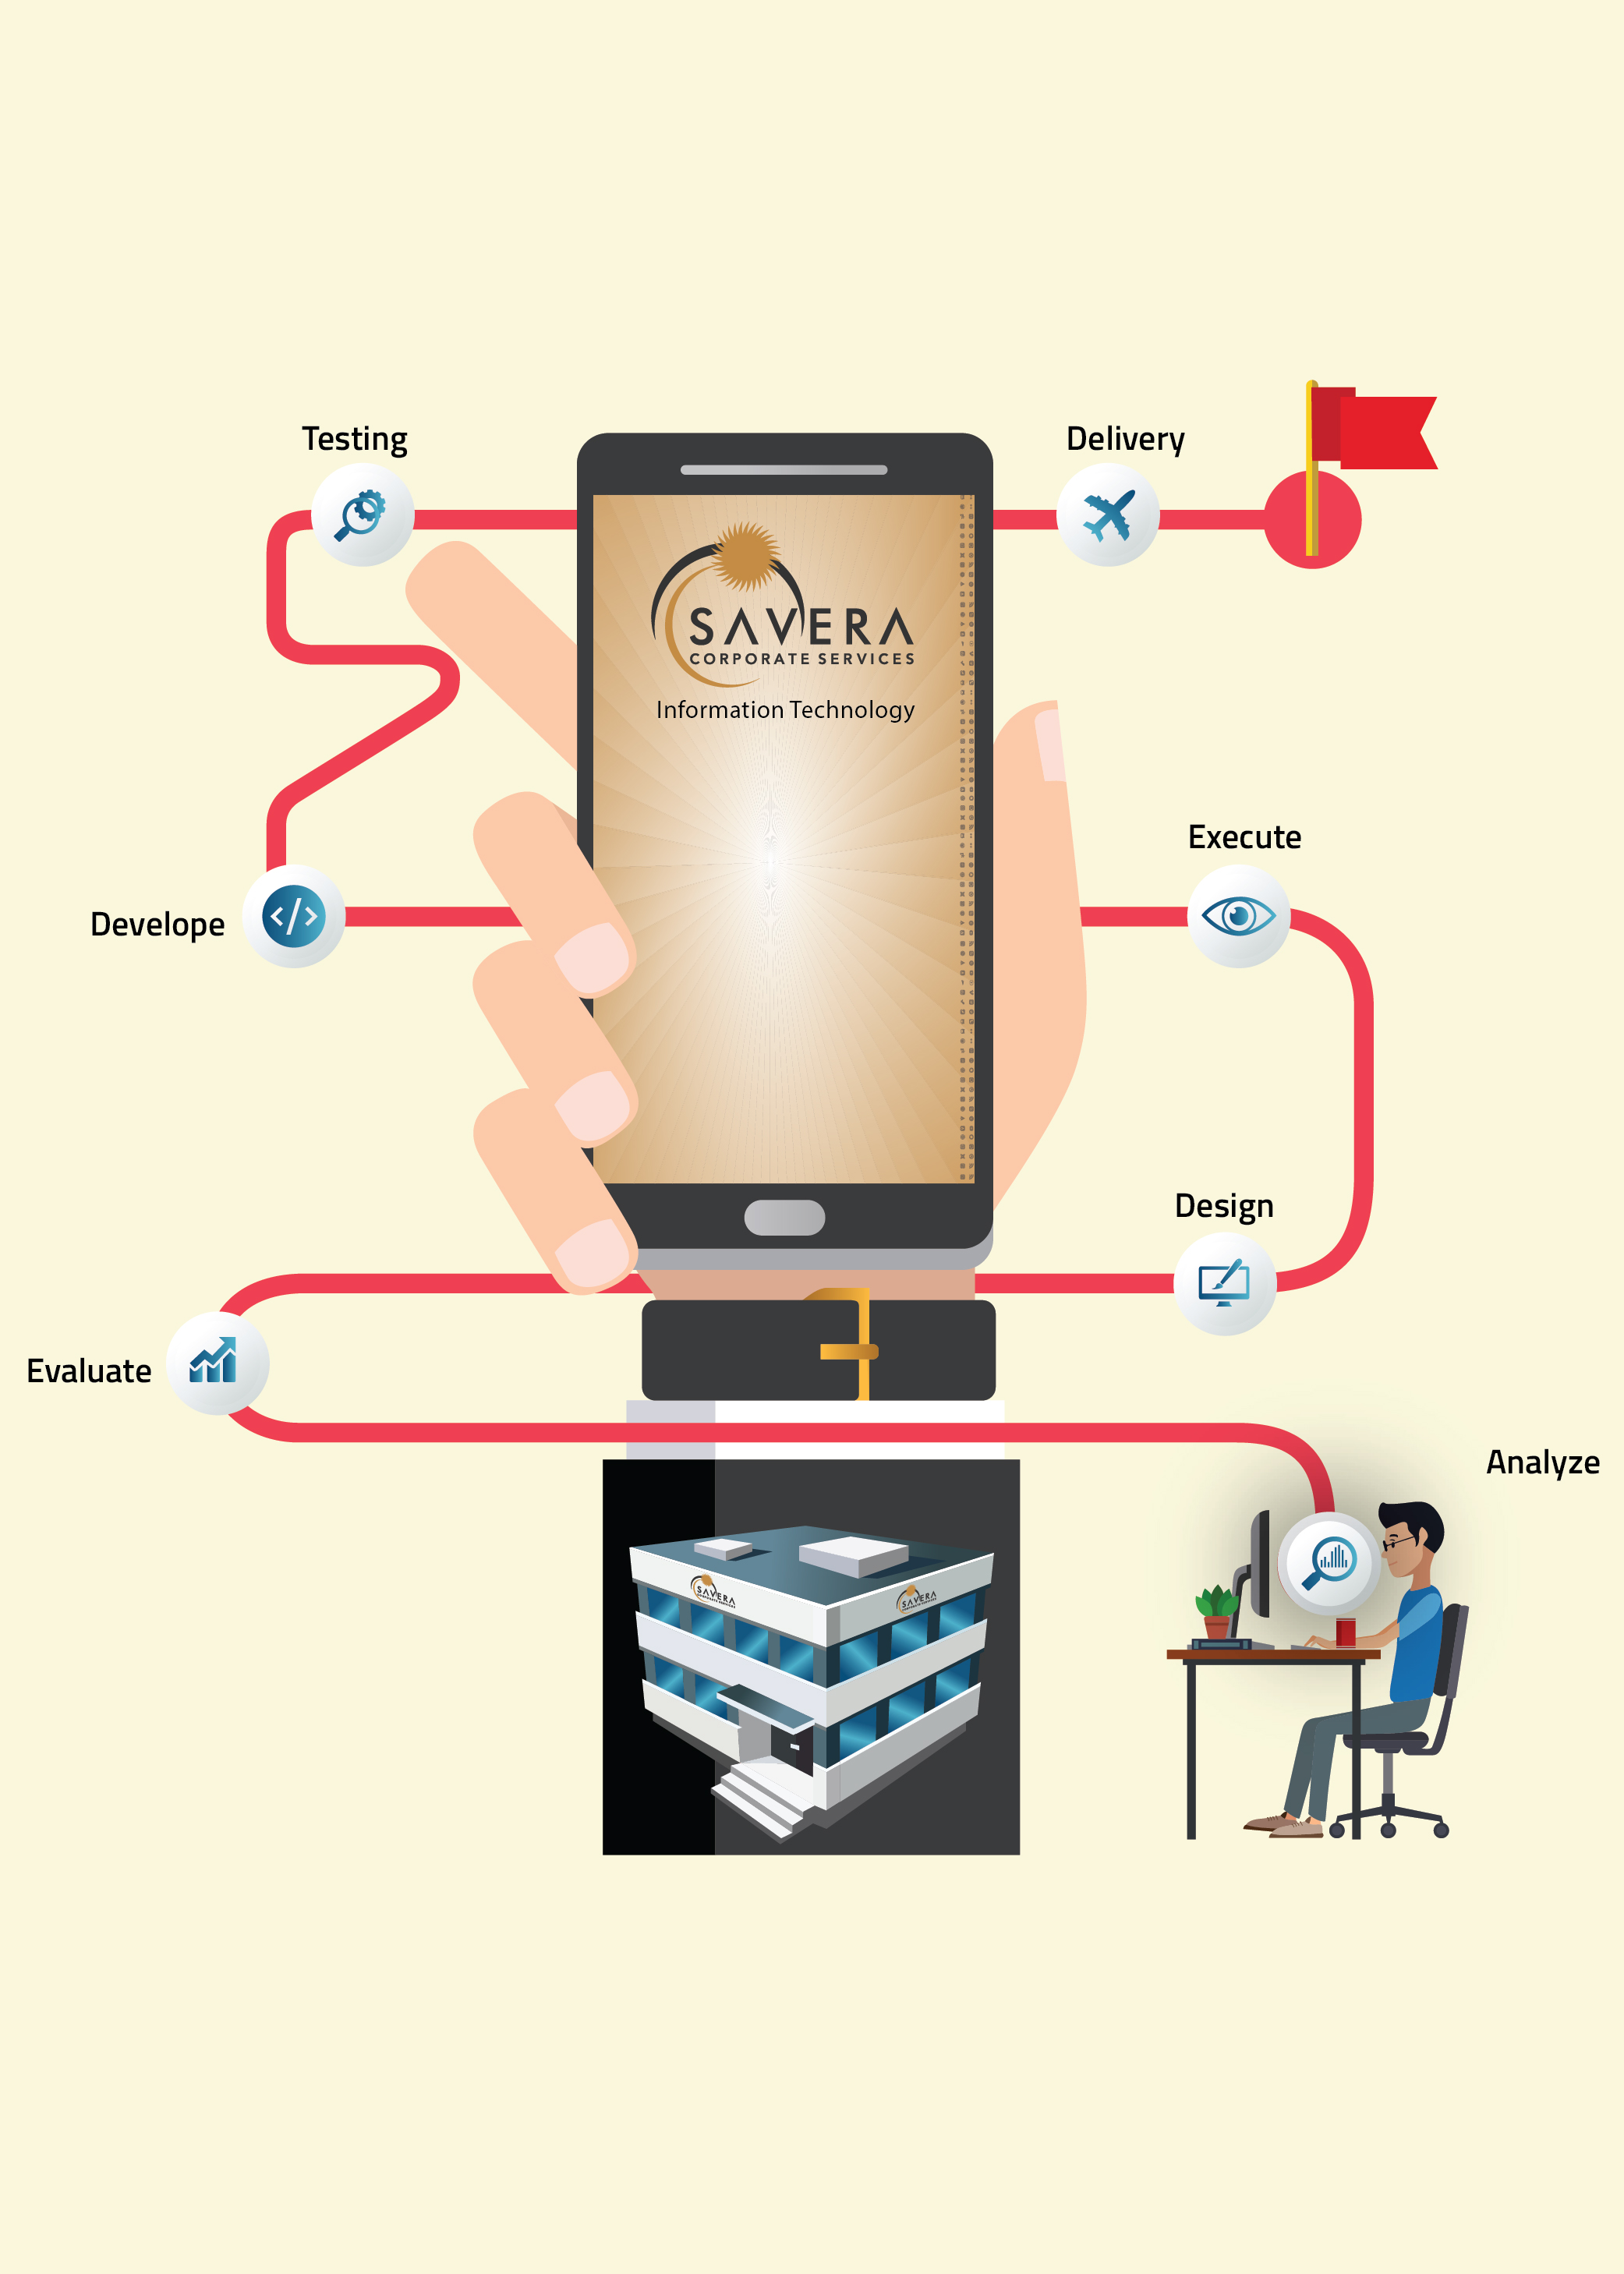 savera-corporate-services-about-us